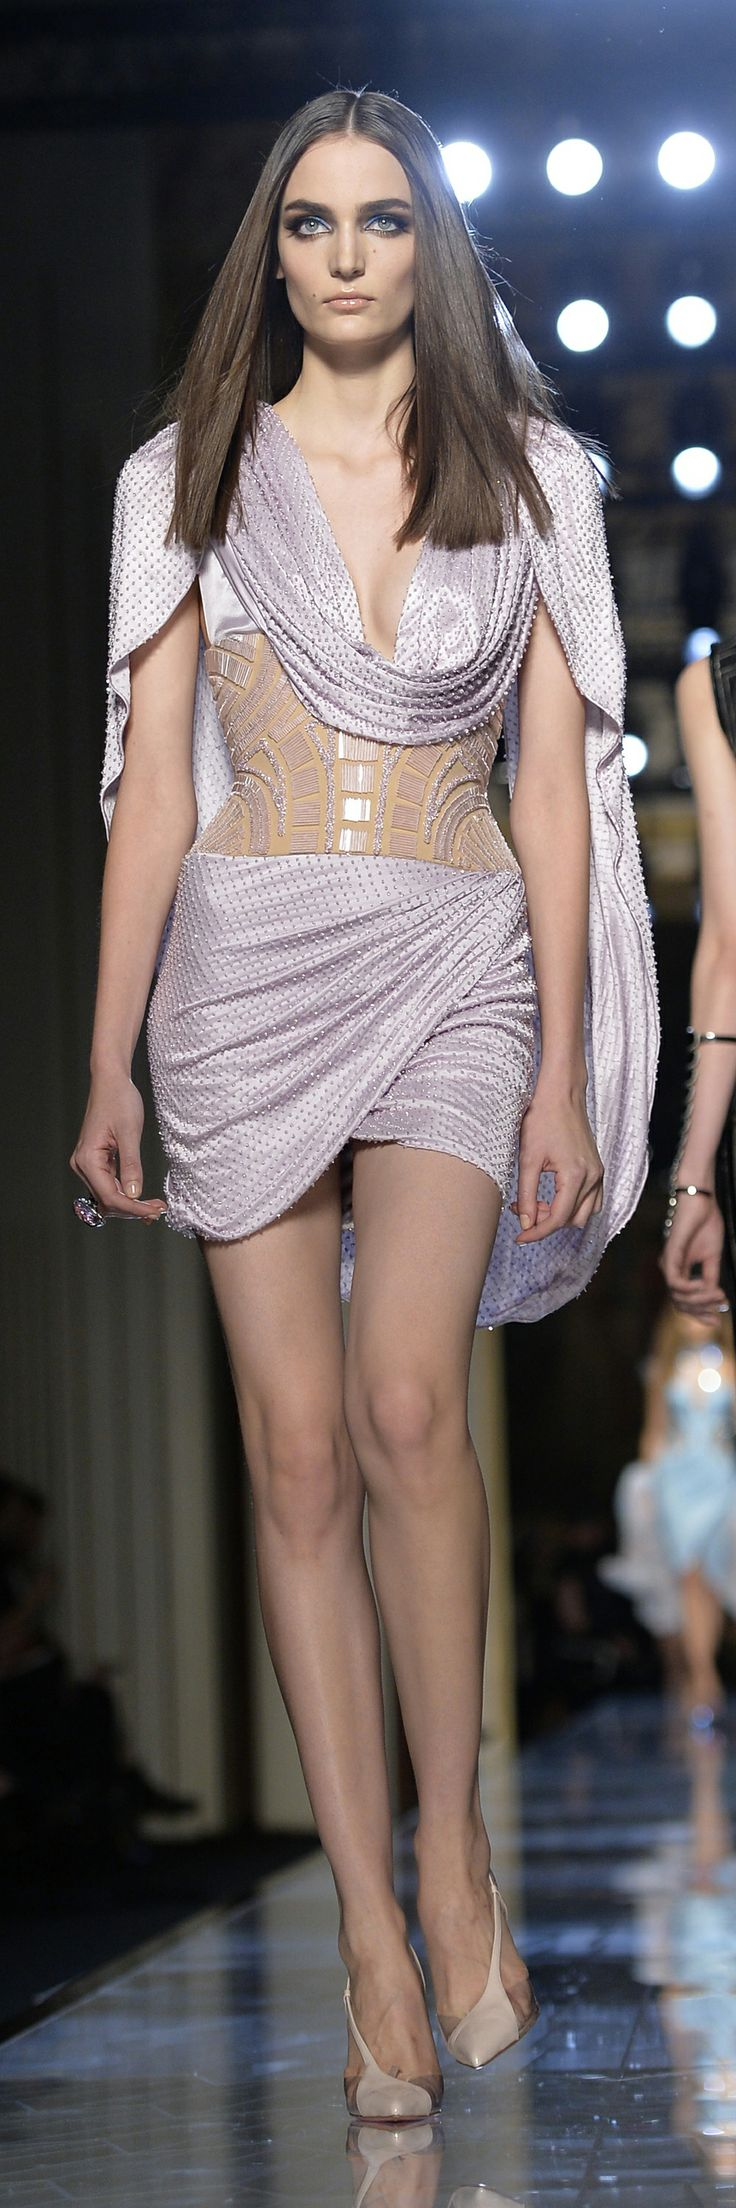 Atelier Versace's Spring 2014 Collection @Official Versace